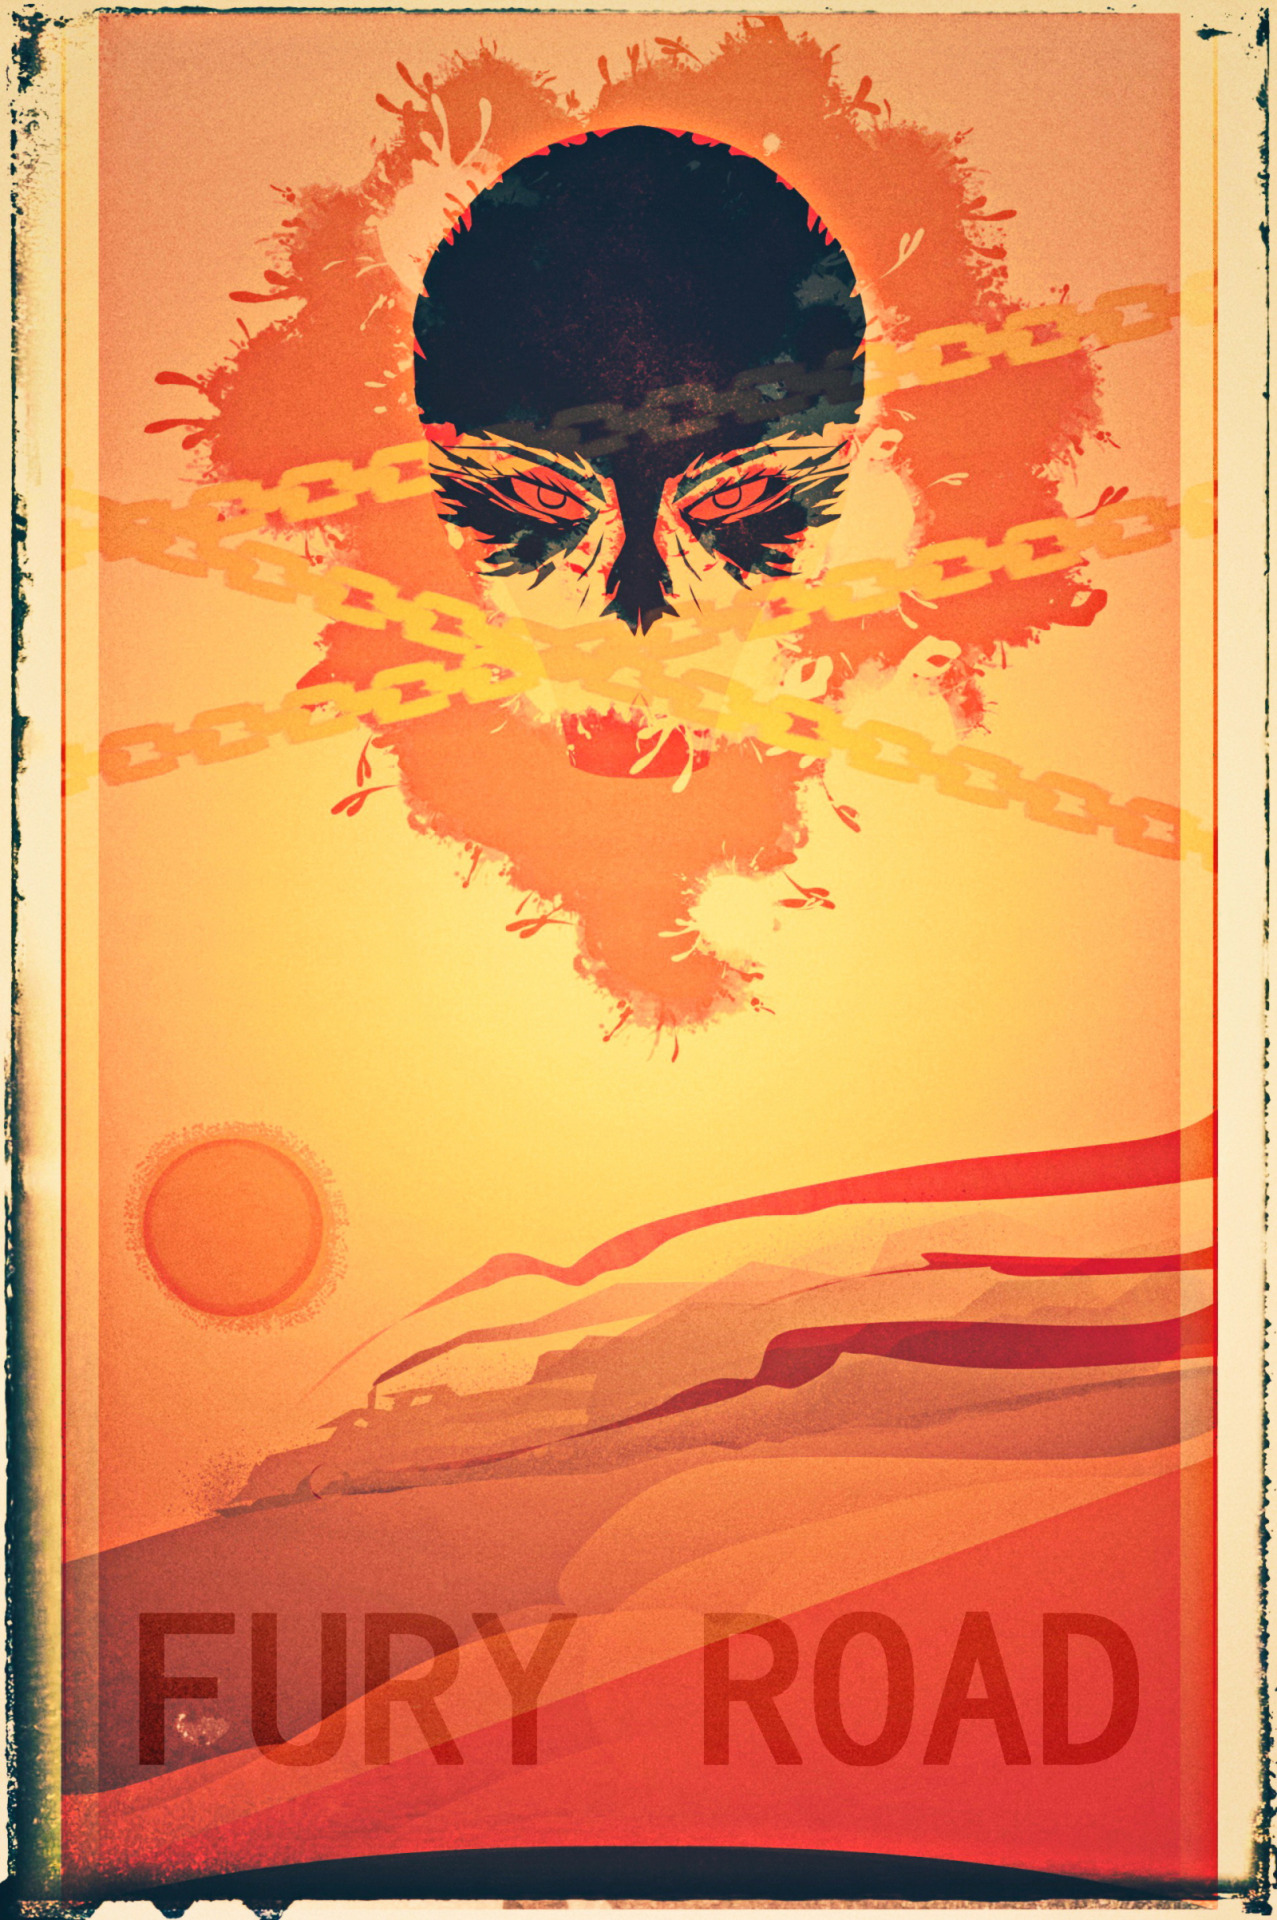 Mad Max: Fury Road Posters by Lazare Gvimradze